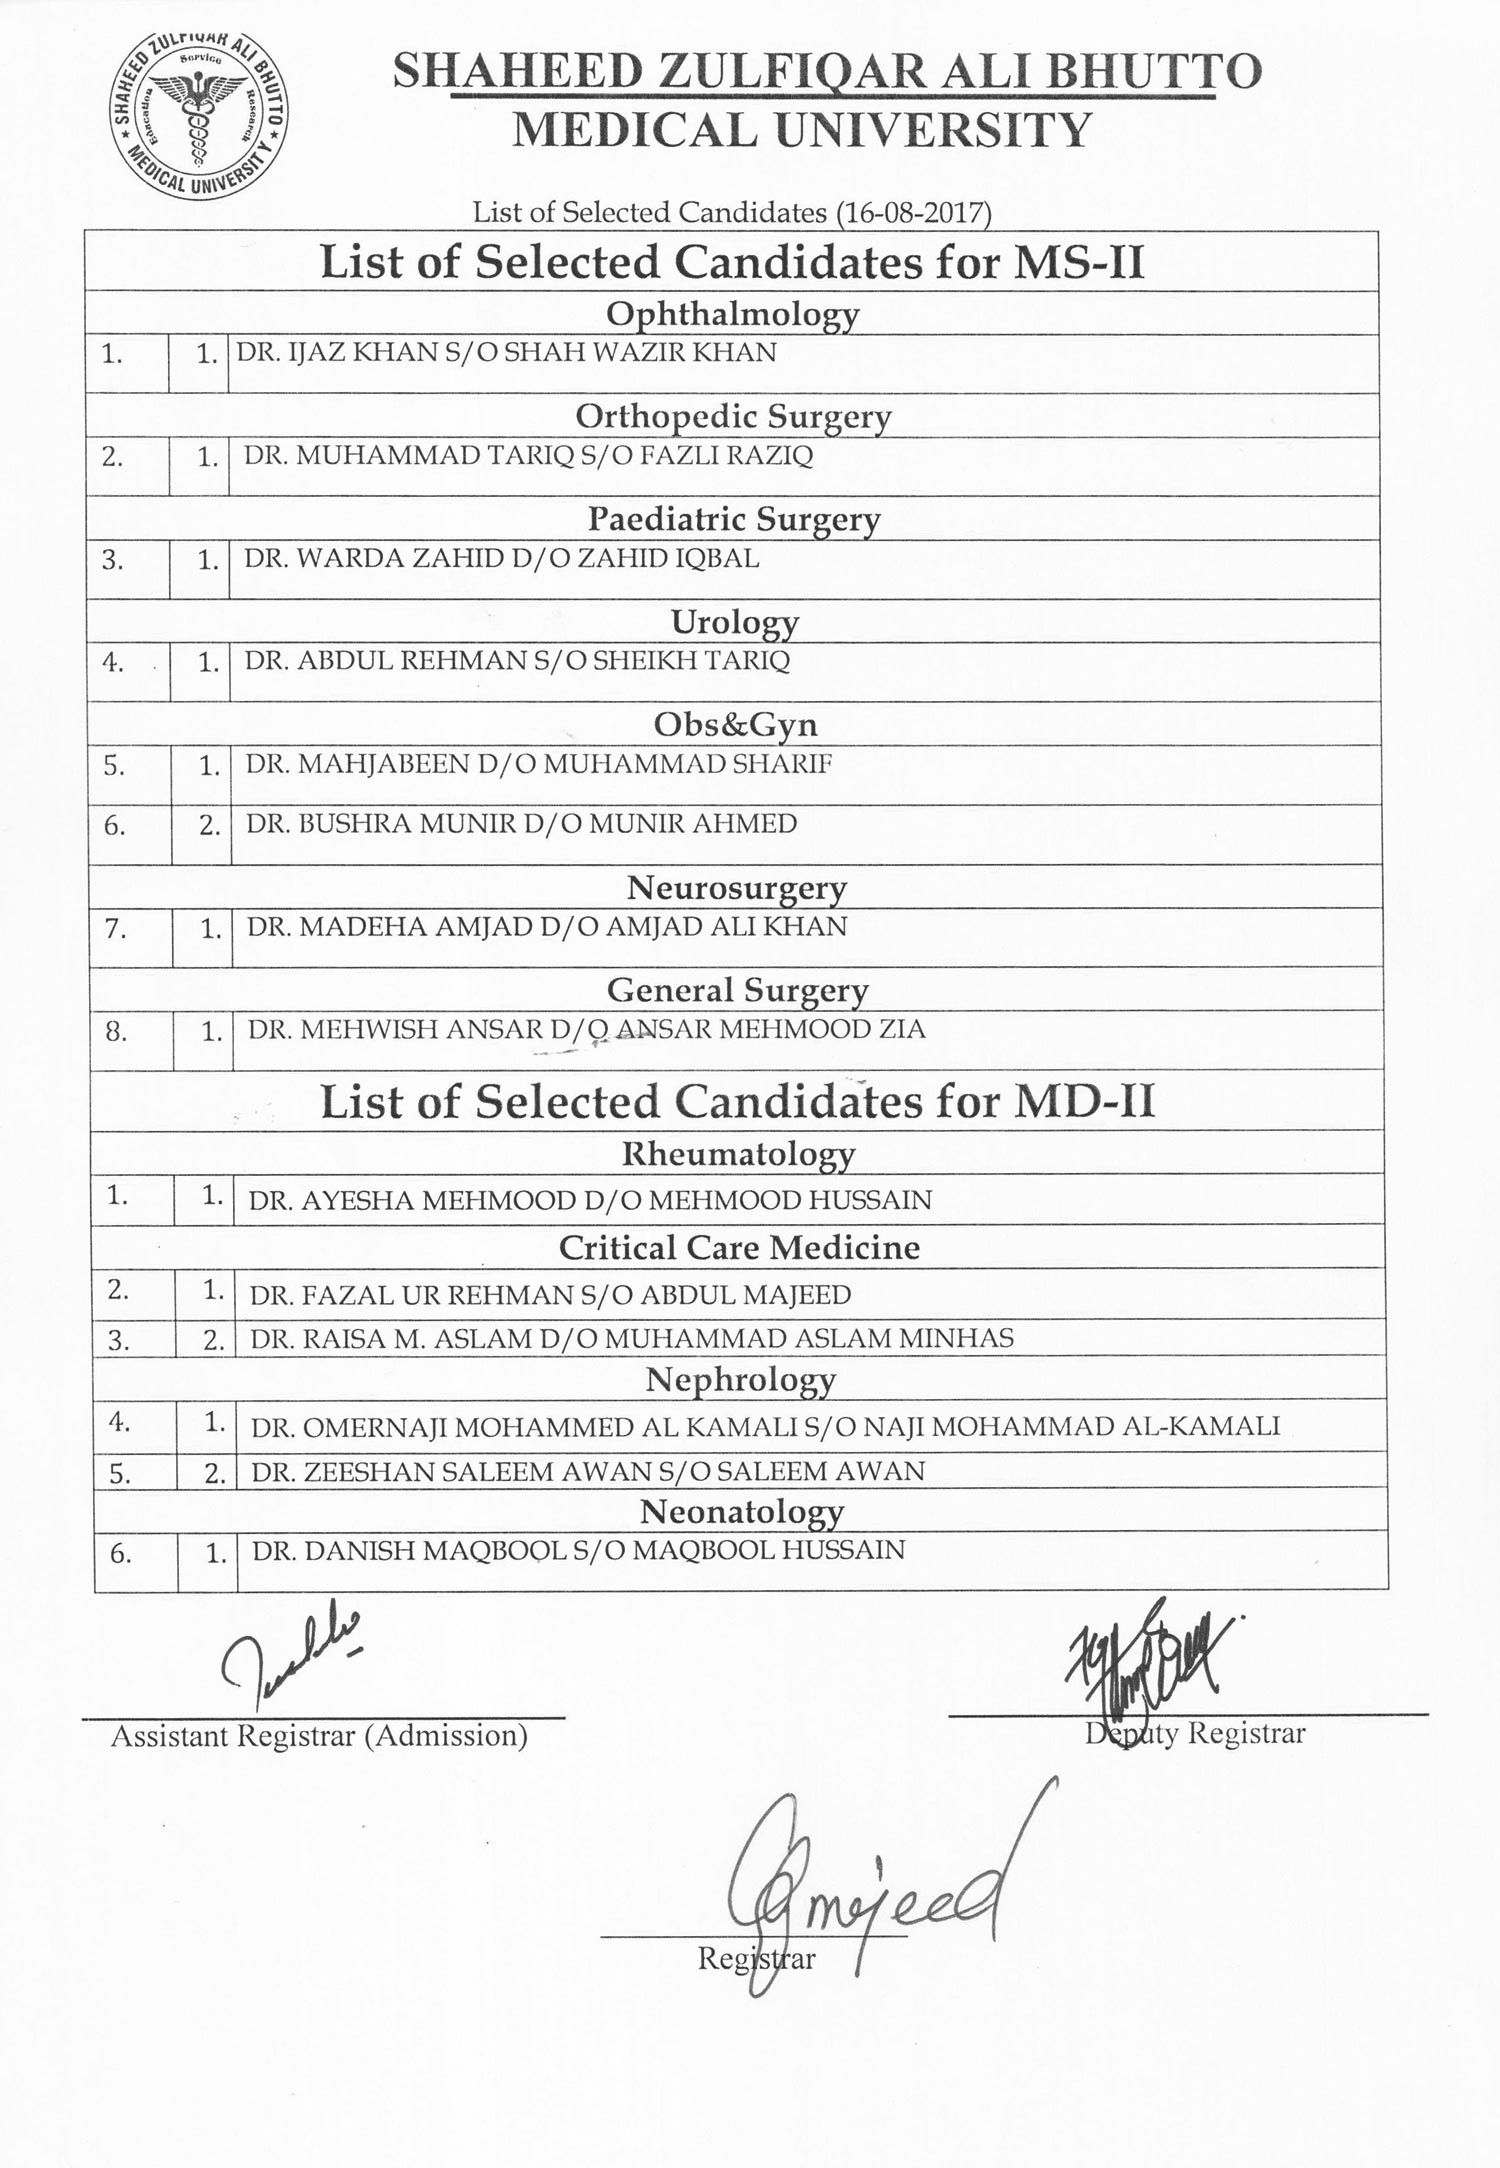 List of Selected Candidates for MS-II, MD-II Residency training program